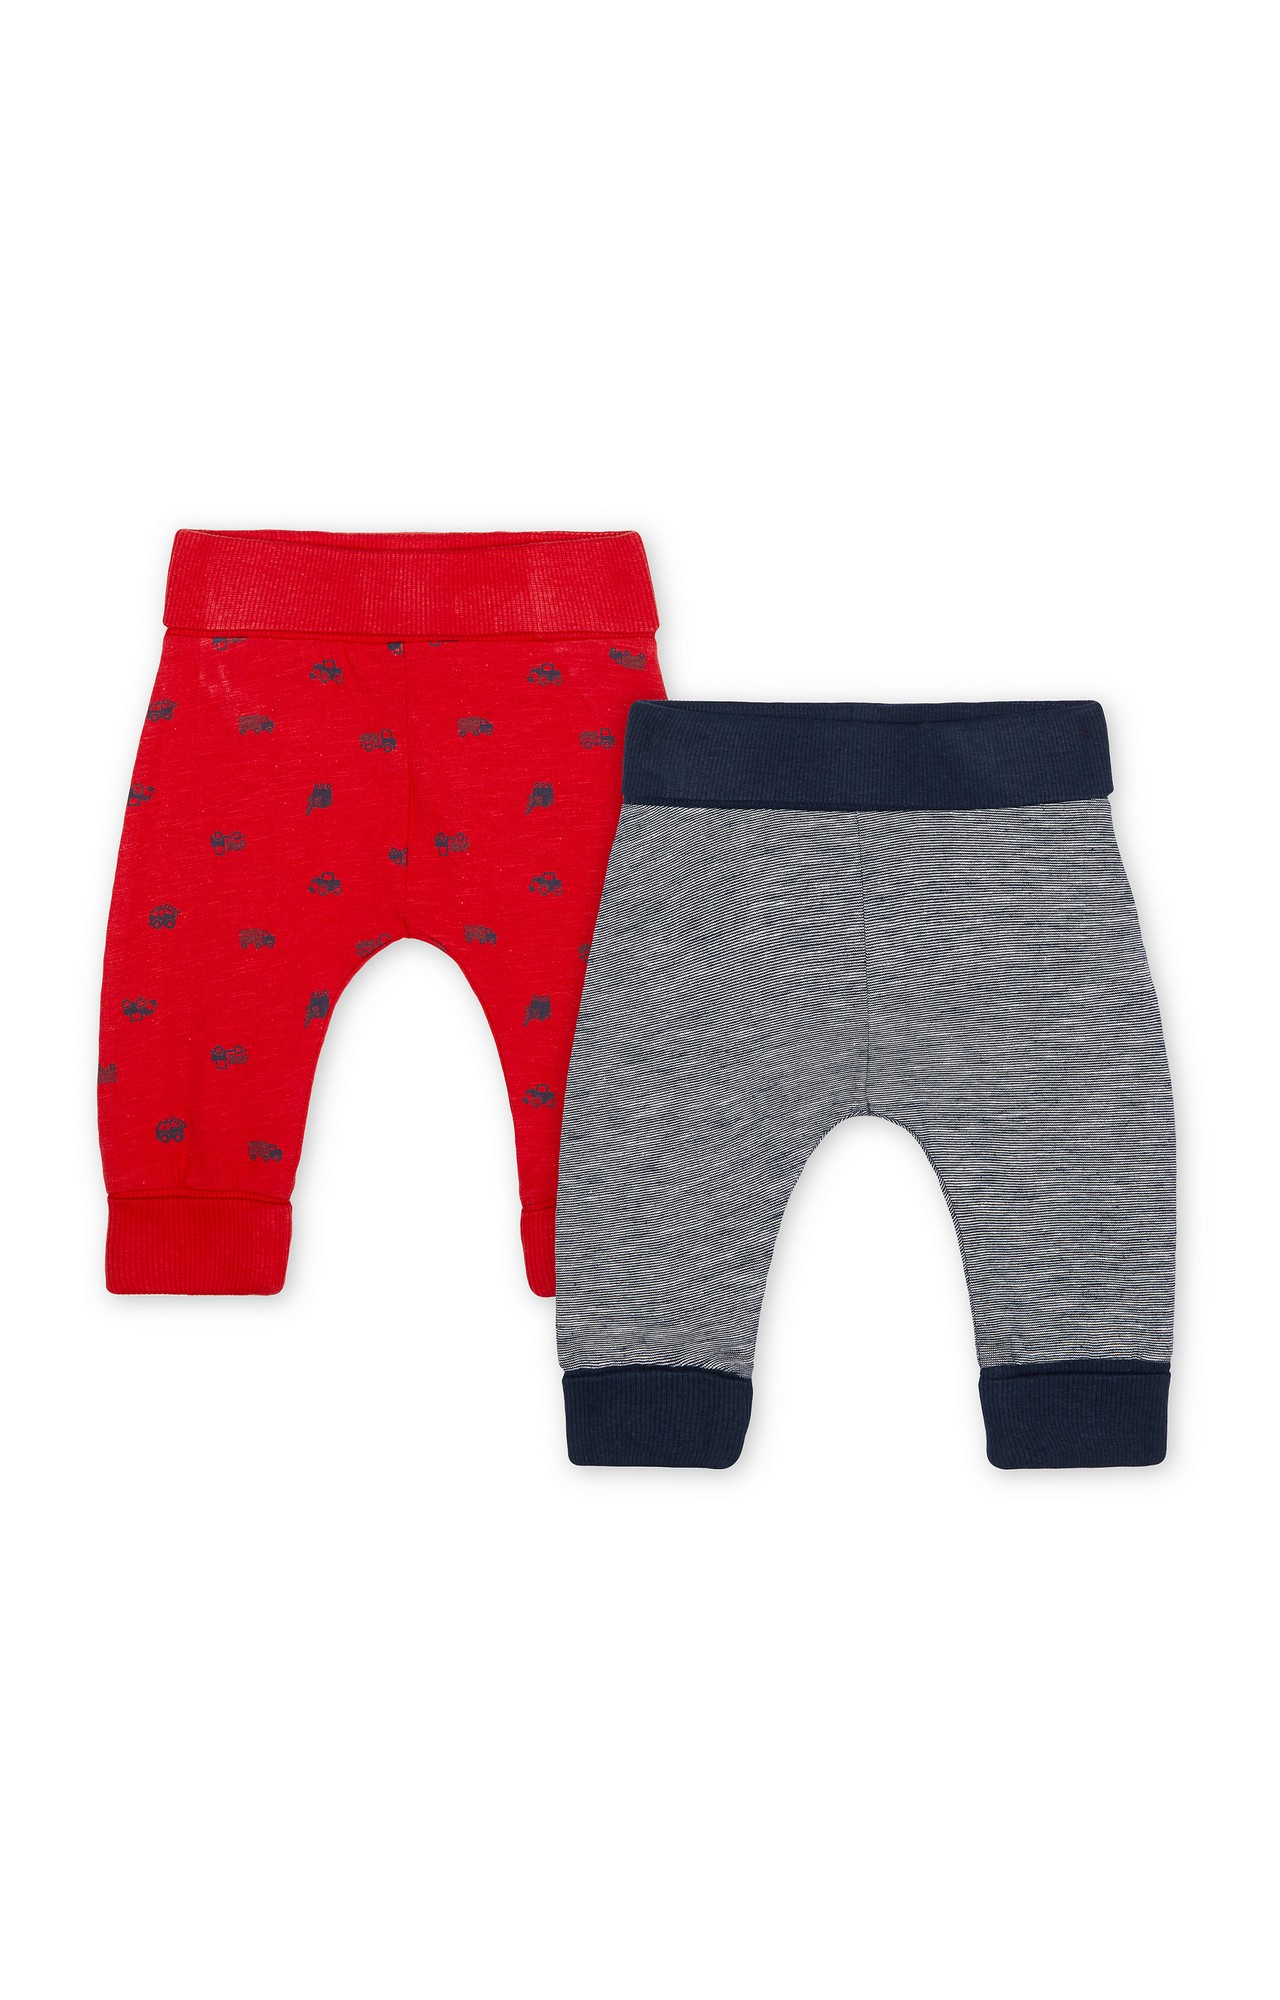 Mothercare | Navy Printed Casual Pants - Pack of 2